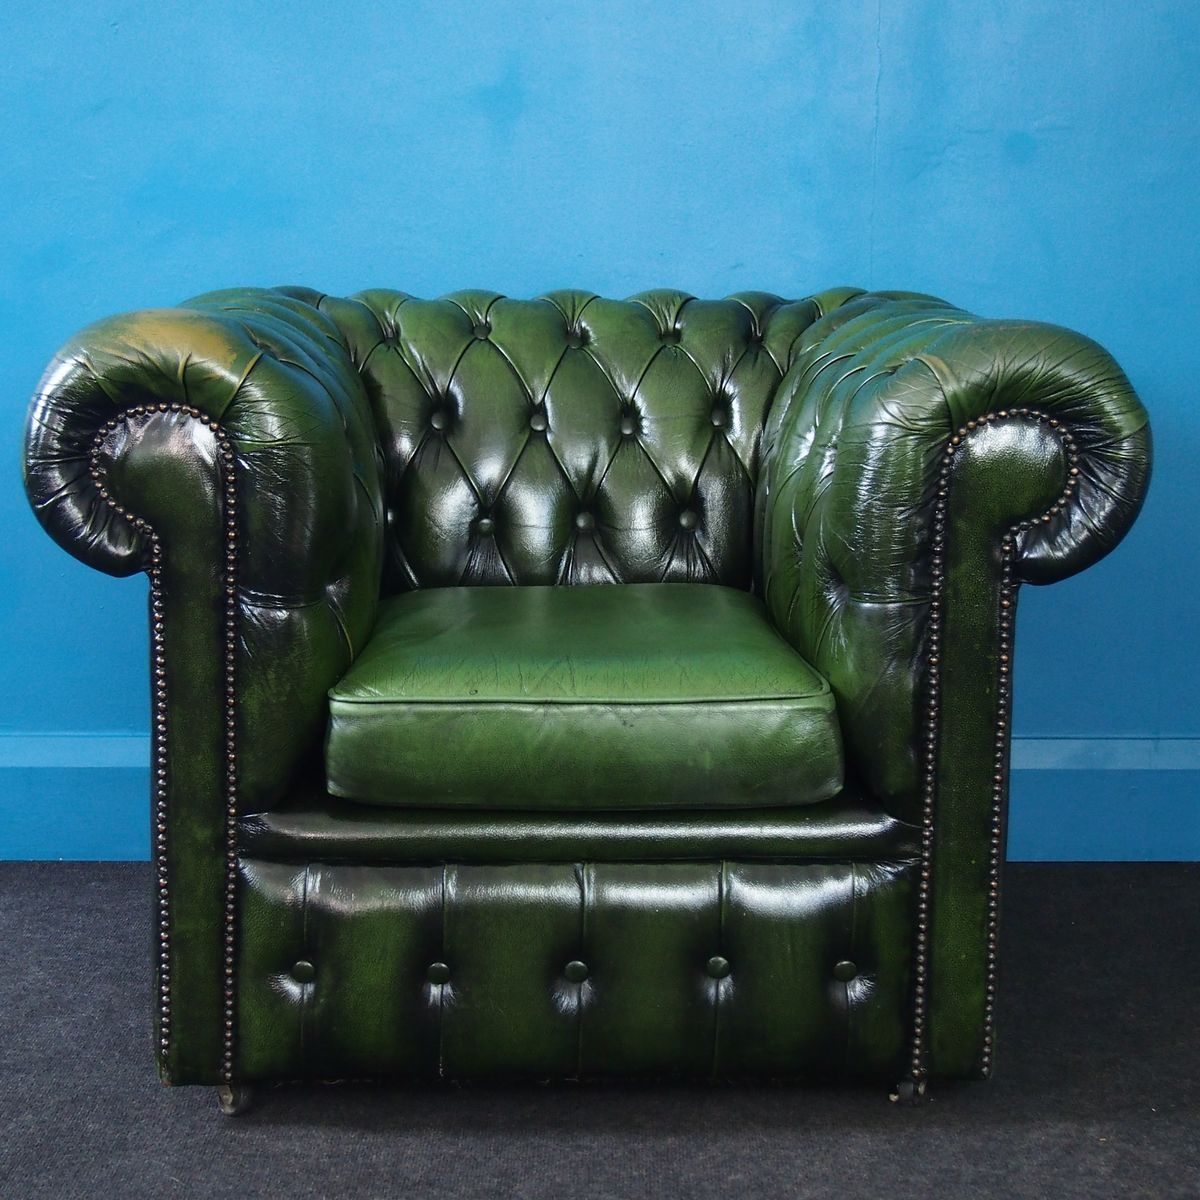 fauteuil club chesterfield vintage en cuir vert 1970s en vente sur pamono. Black Bedroom Furniture Sets. Home Design Ideas